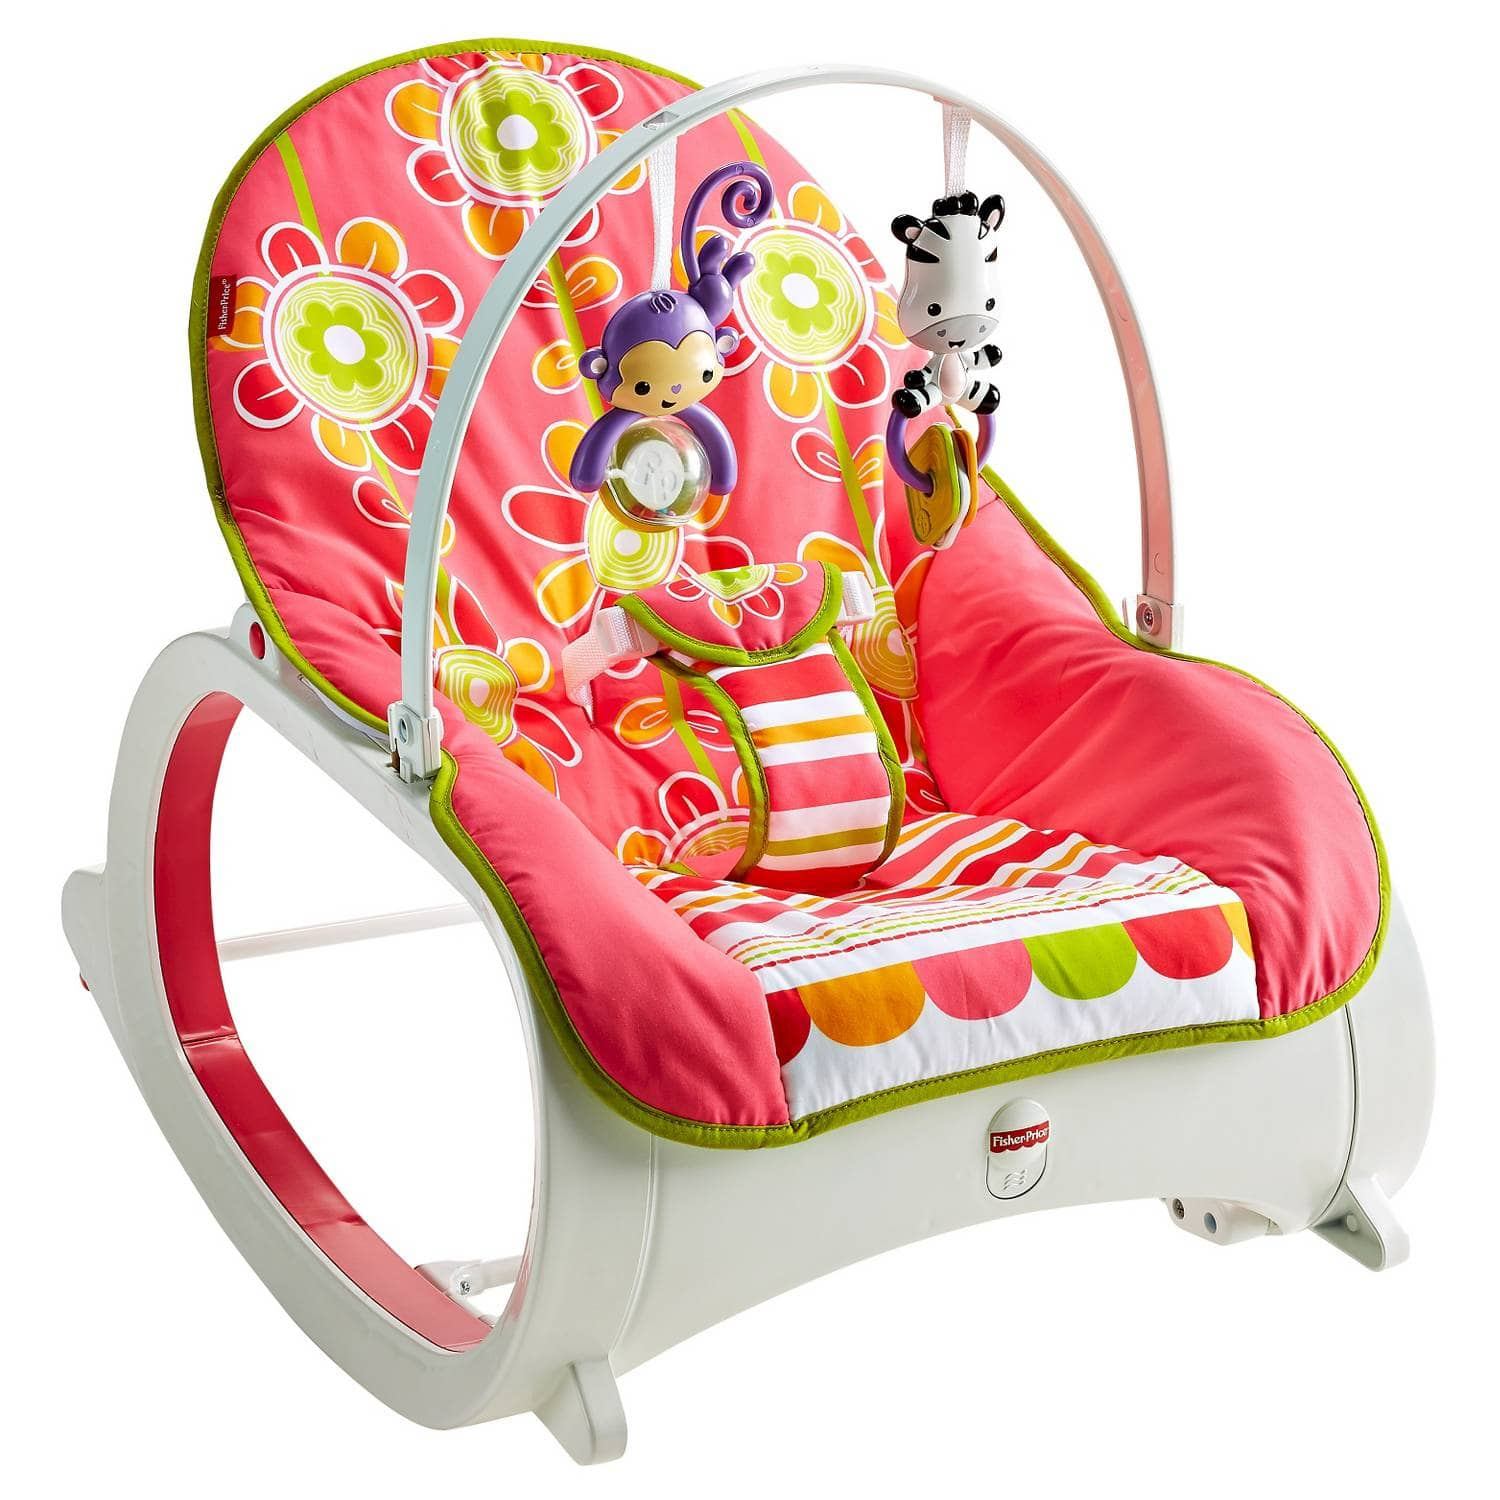 Fisher-Price Rocker in Floral Confetti for $23.19 + free in store pick up